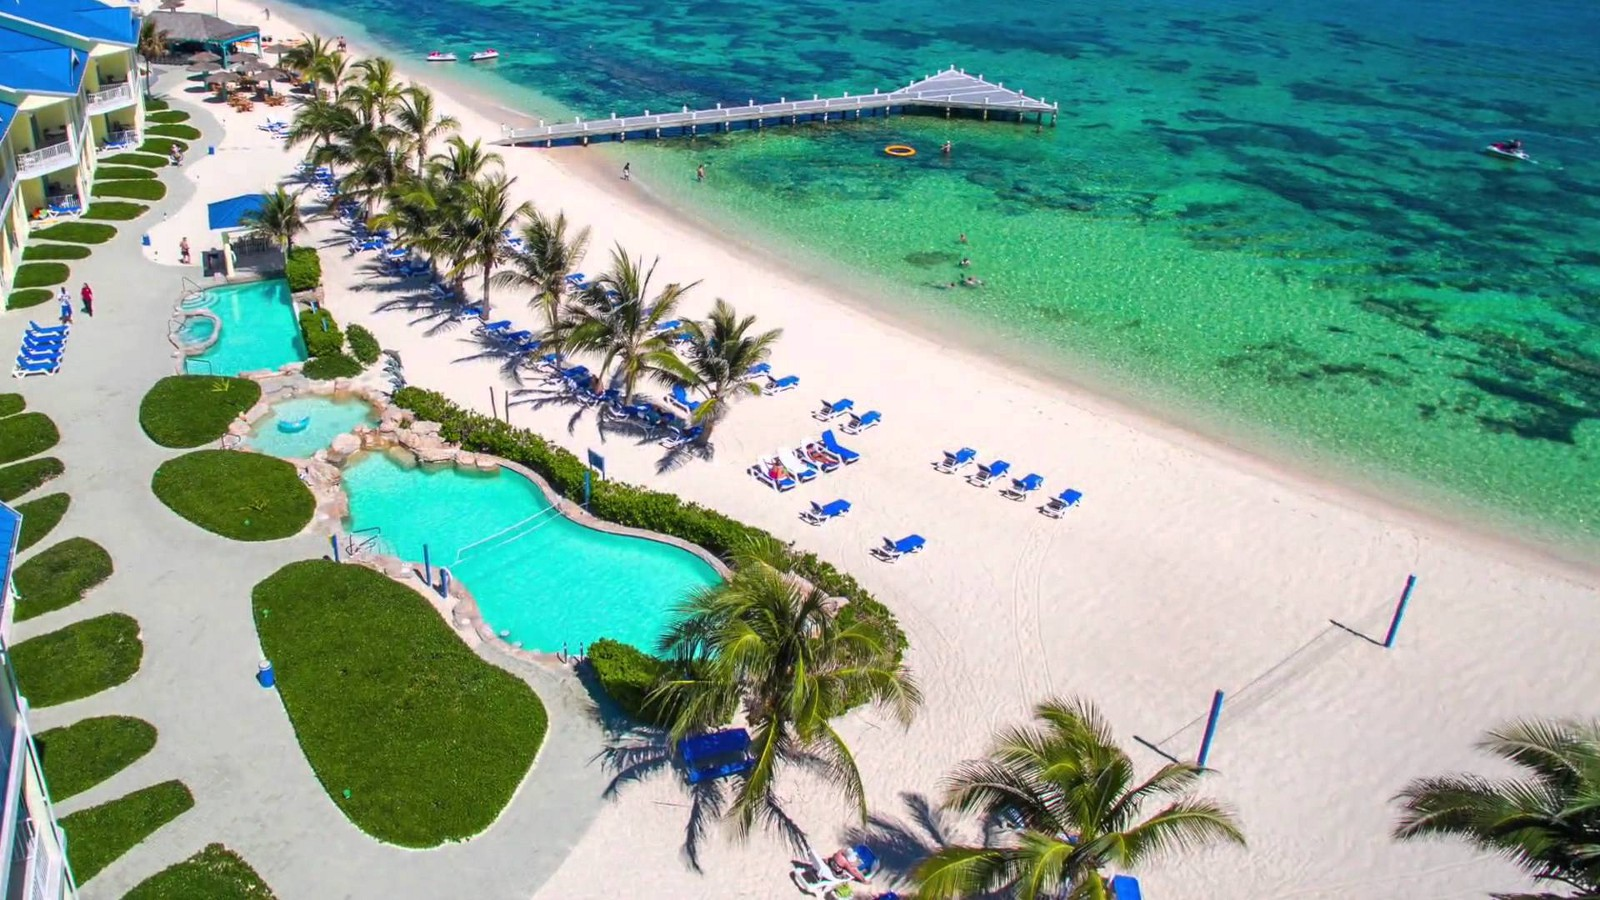 All Inclusive Activities Caribbean Beach Resort That Attract Tourists